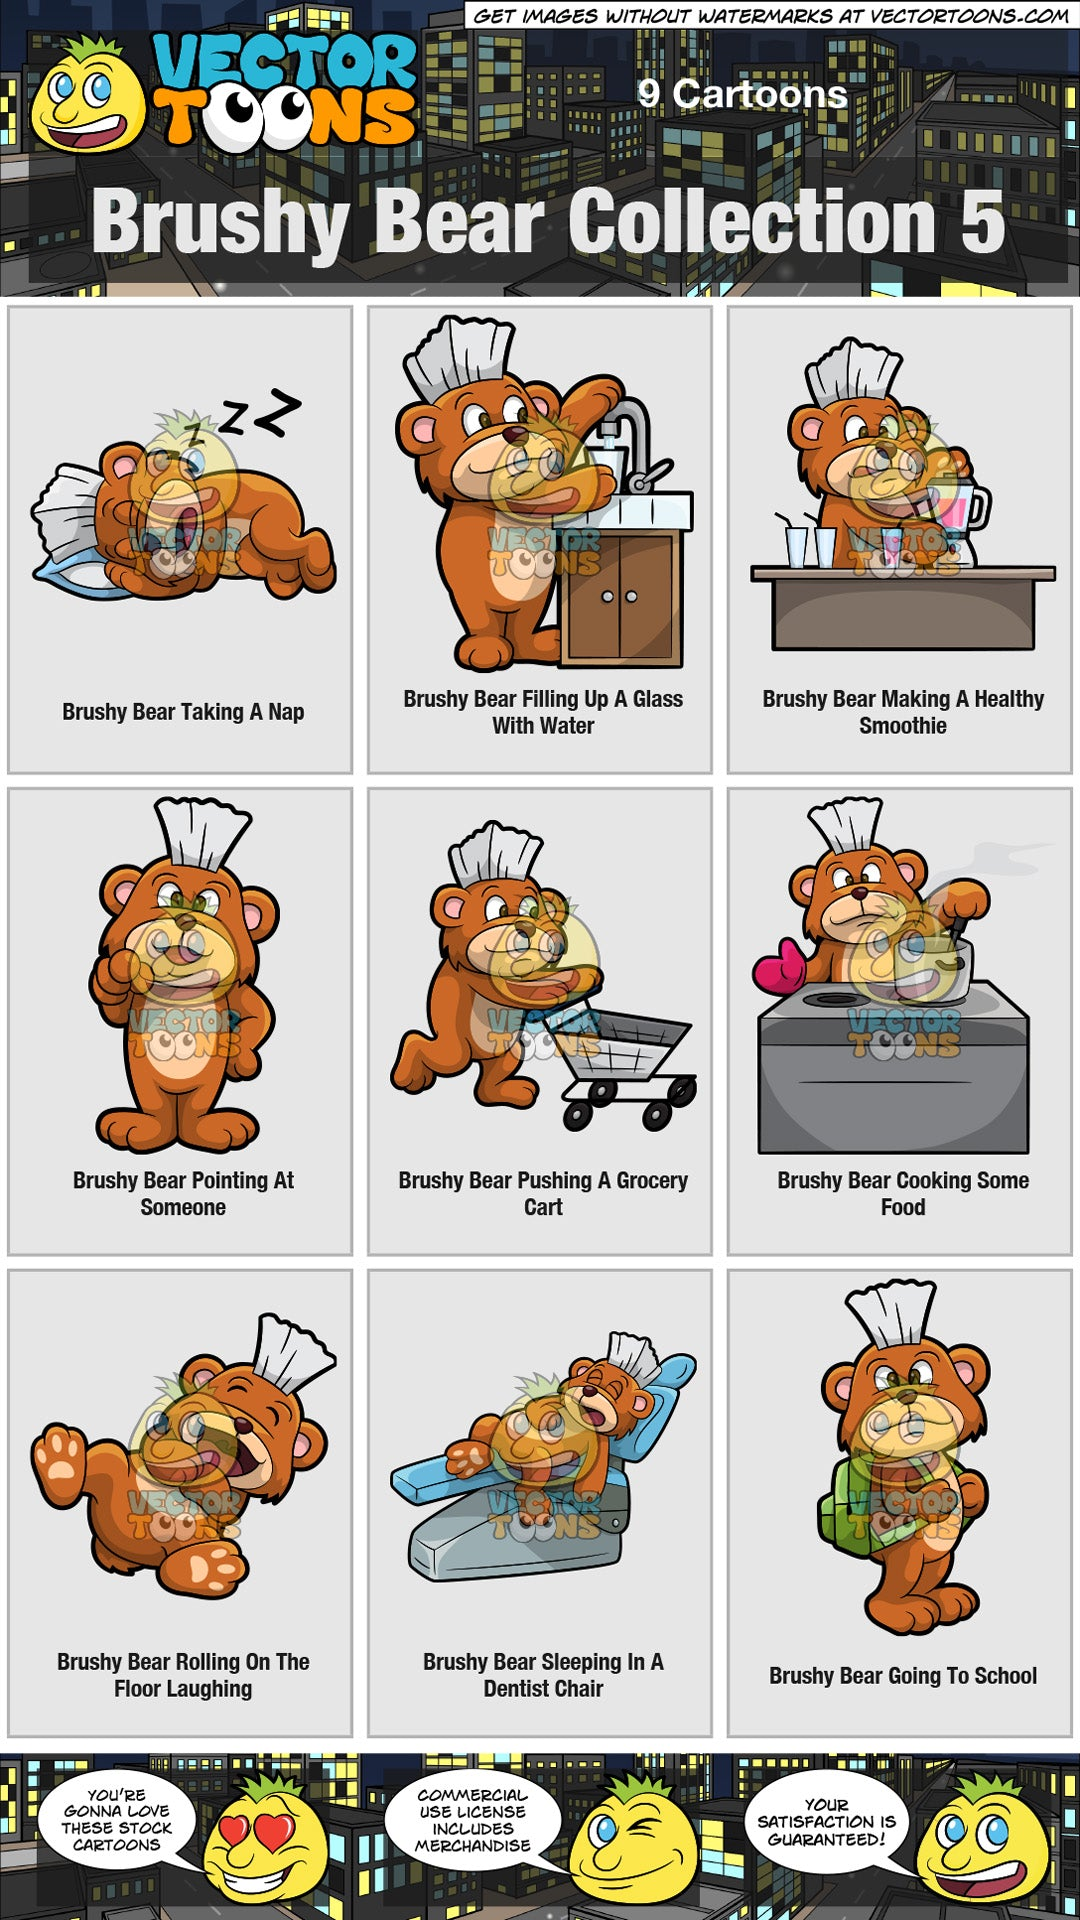 Brushy Bear Collection 5